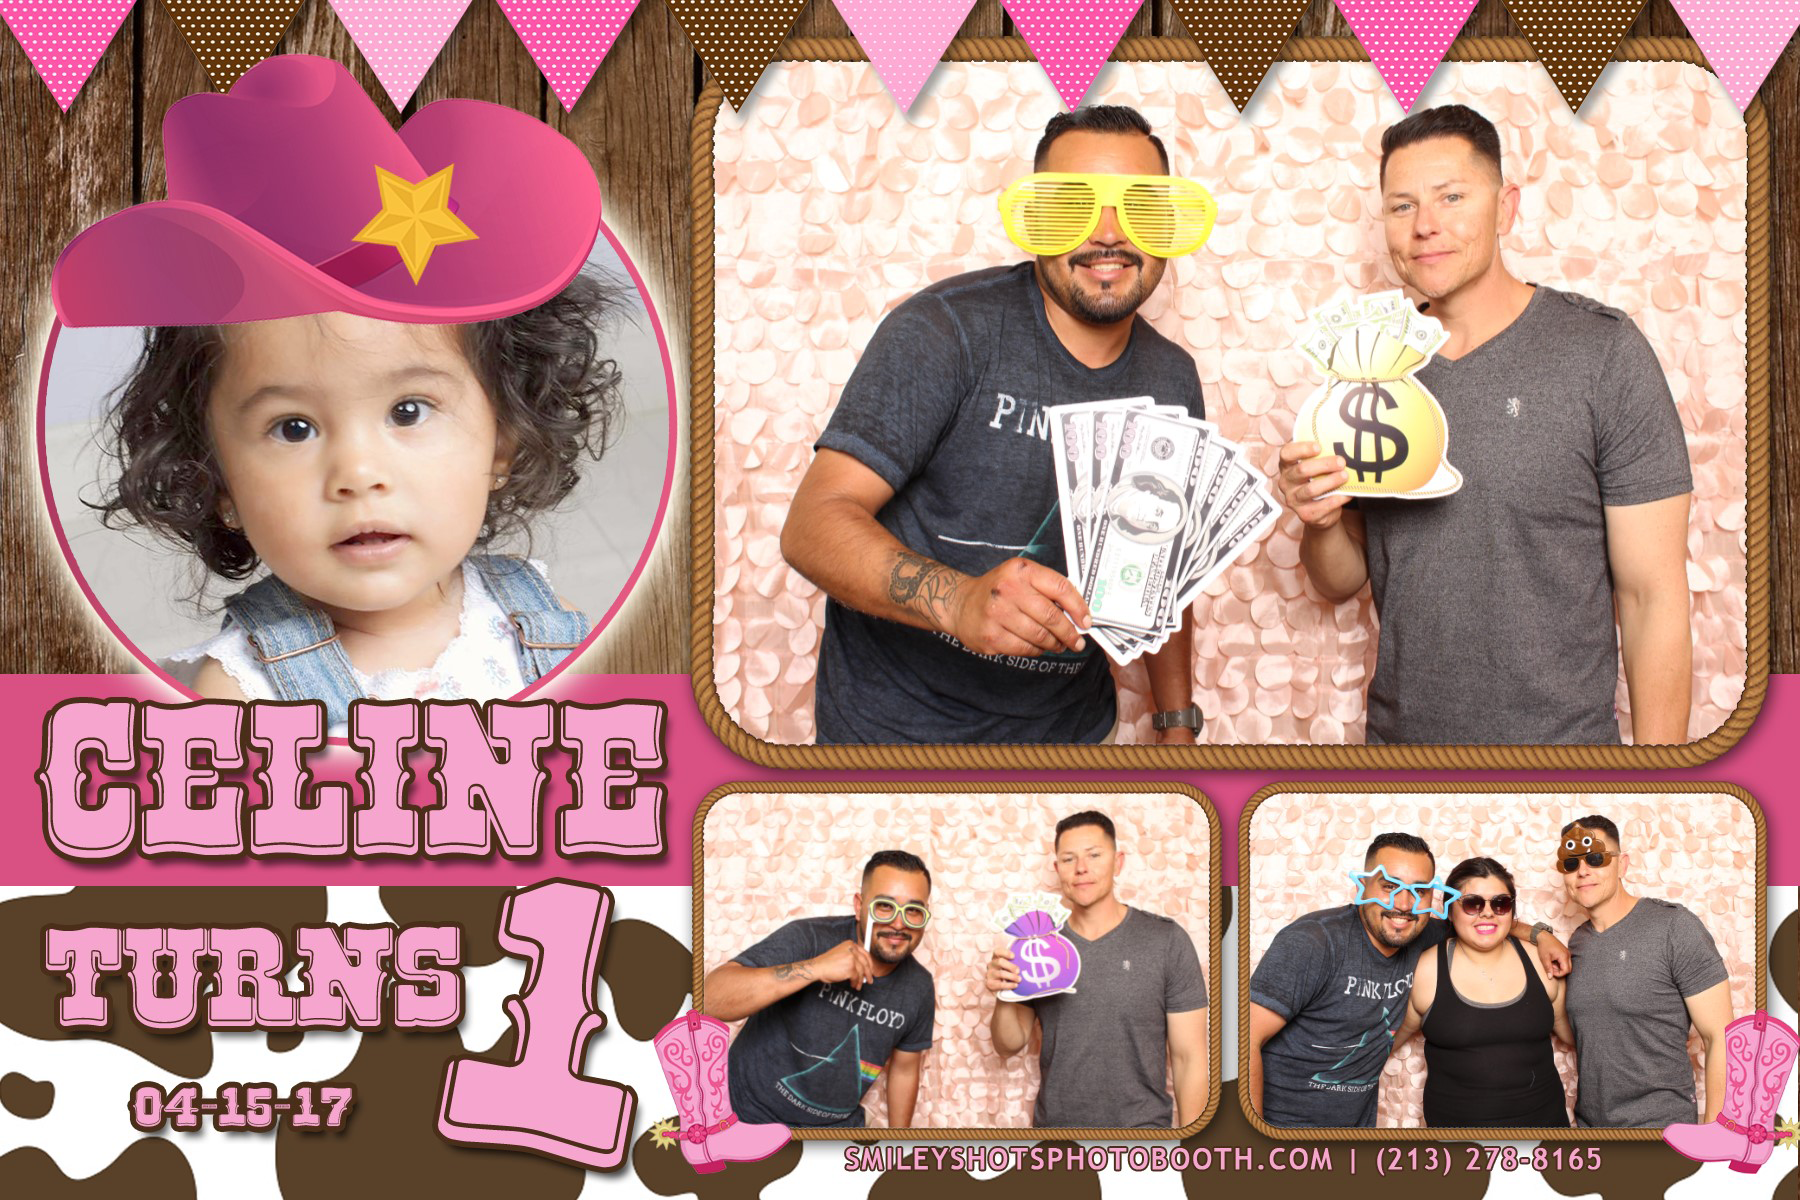 Celine turns 1 Smiley Shots Photo Booth Photobooth (42).png